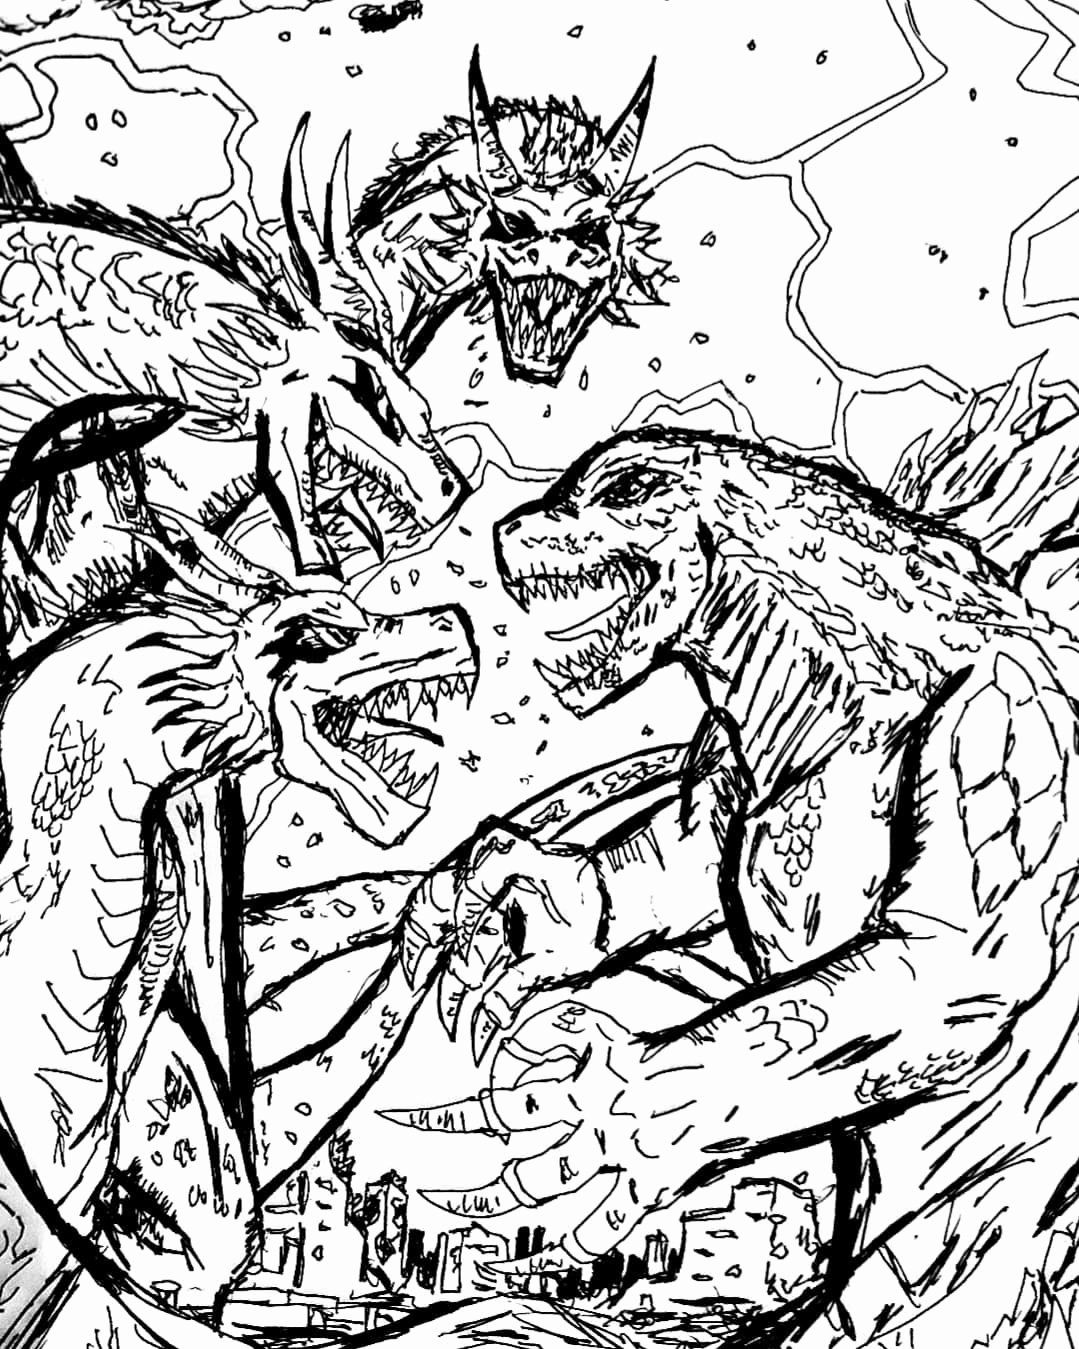 King Ghidorah Coloring Pages New Letthemfight Instagram S And Videos Coloring Pages Color Artwork [ 1349 x 1079 Pixel ]